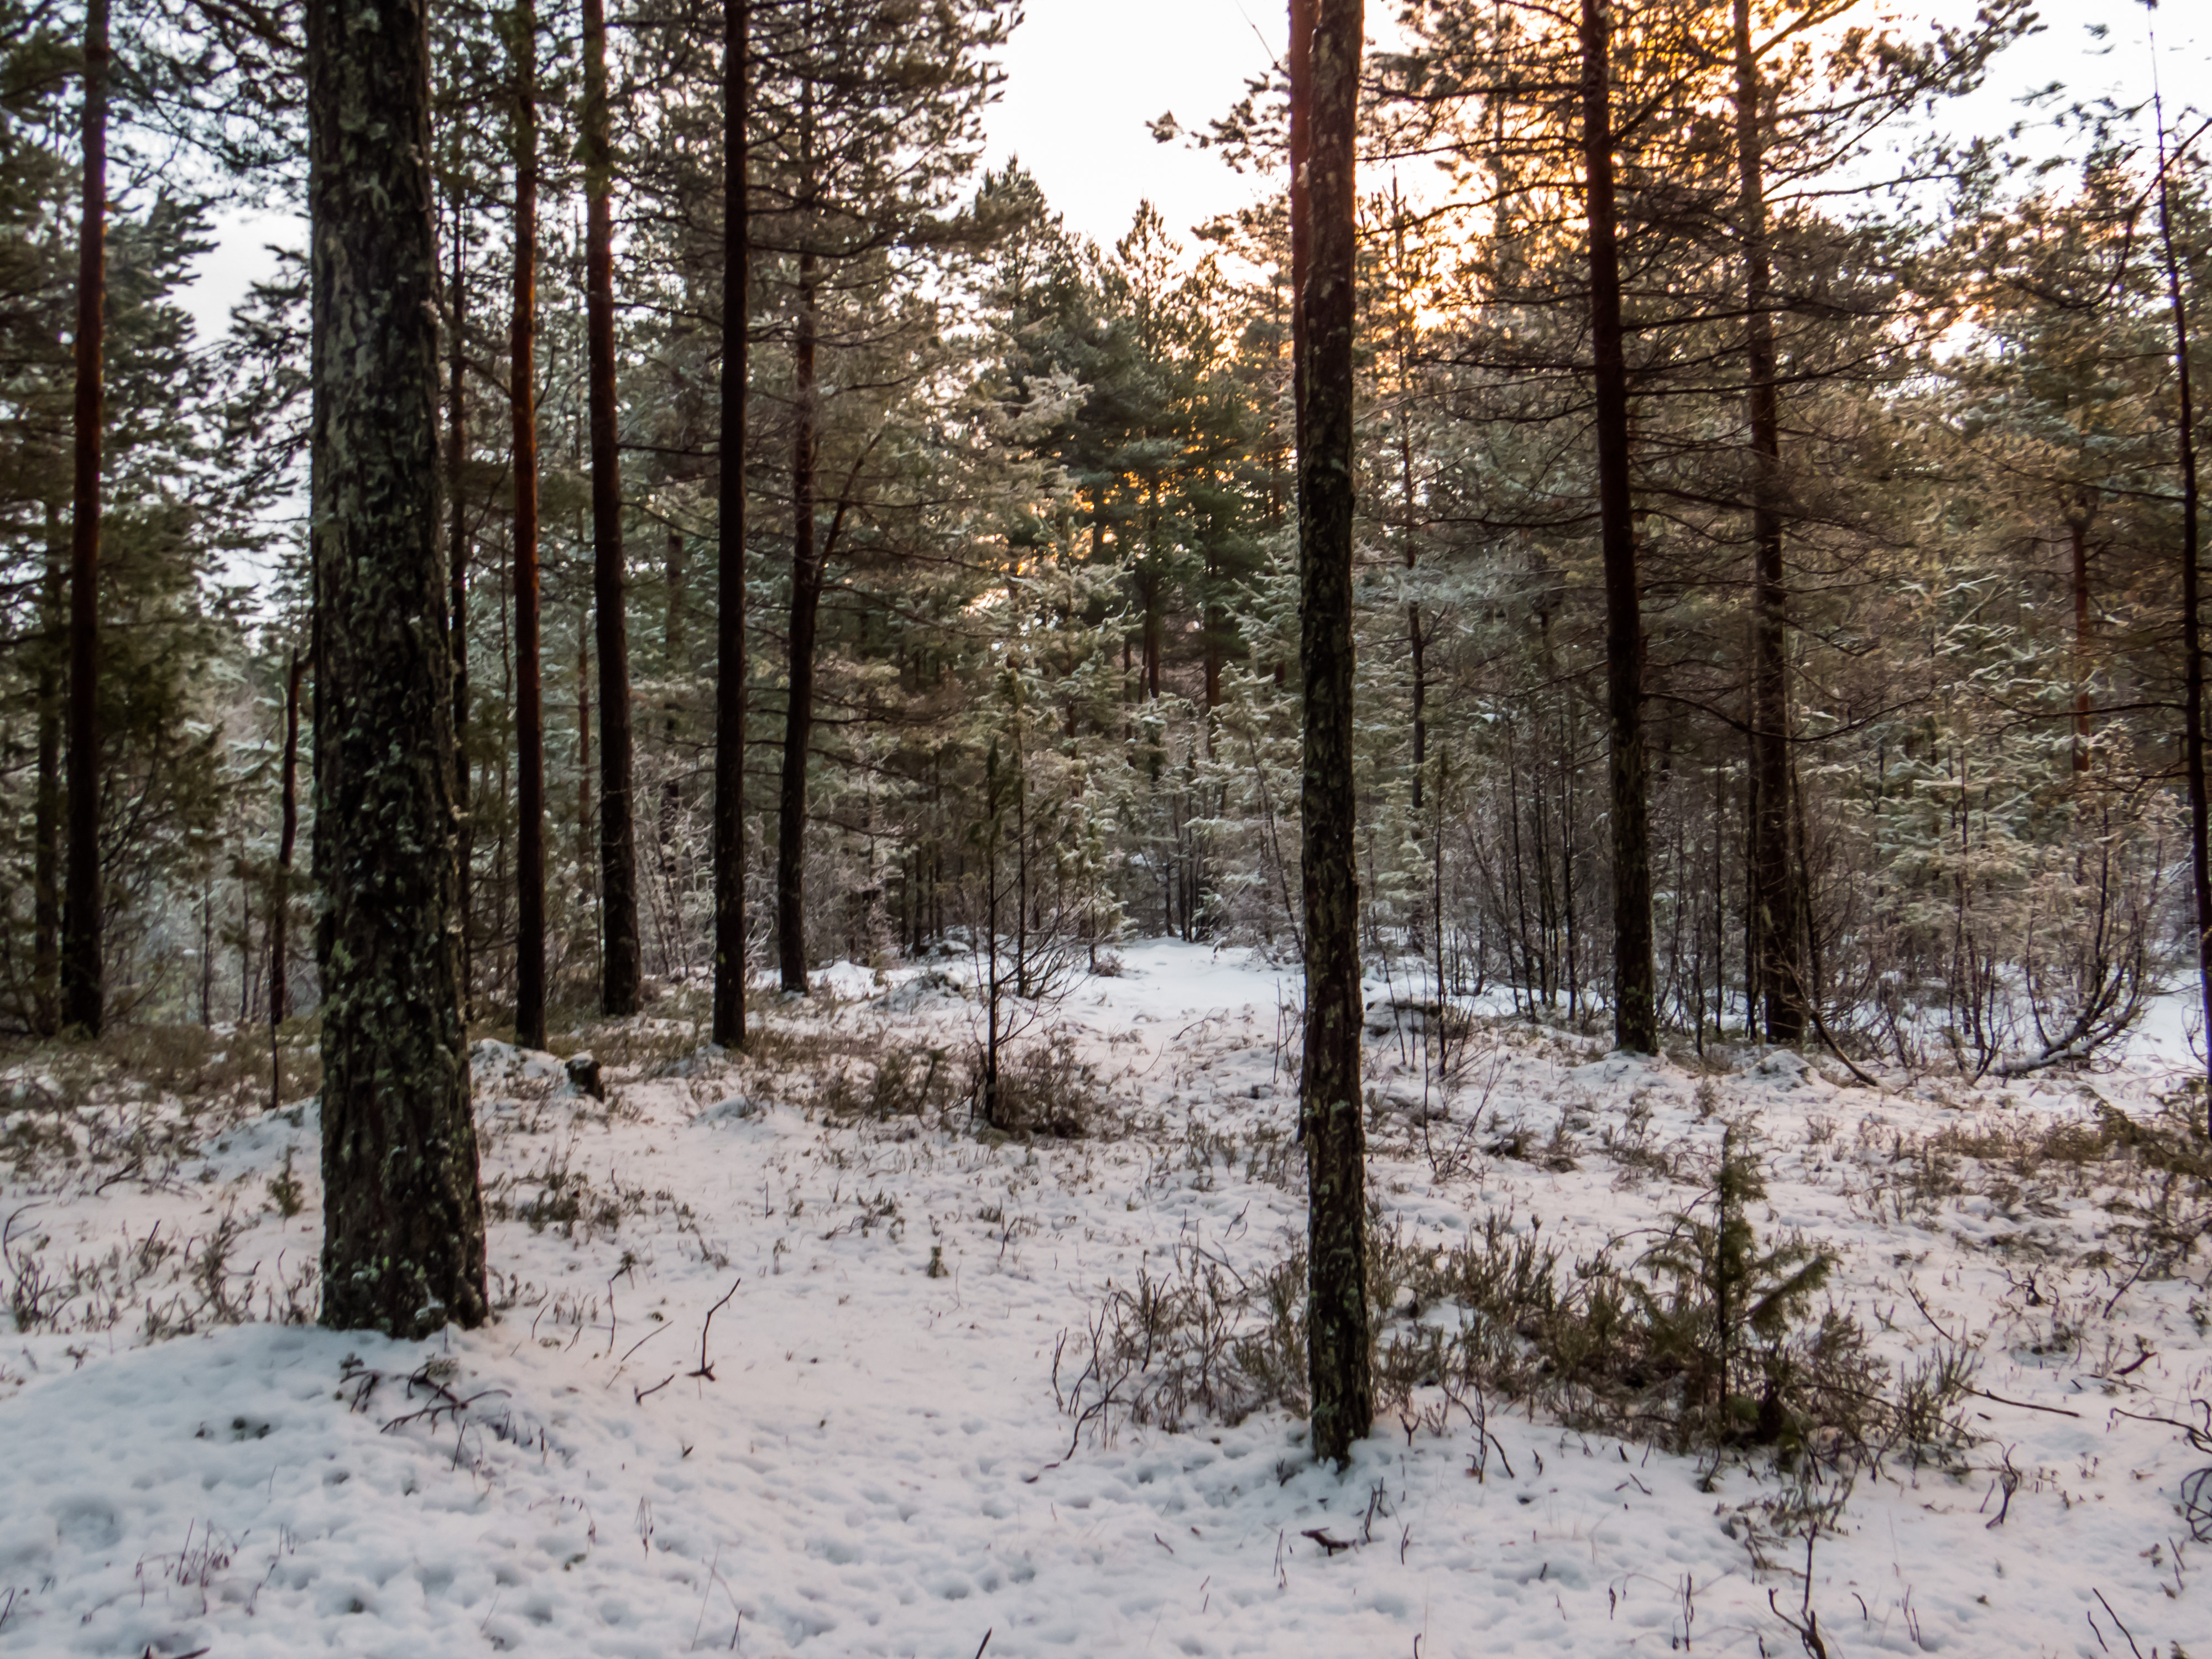 Snowy Forest, Woods, Skies, Nature, Pines, HQ Photo